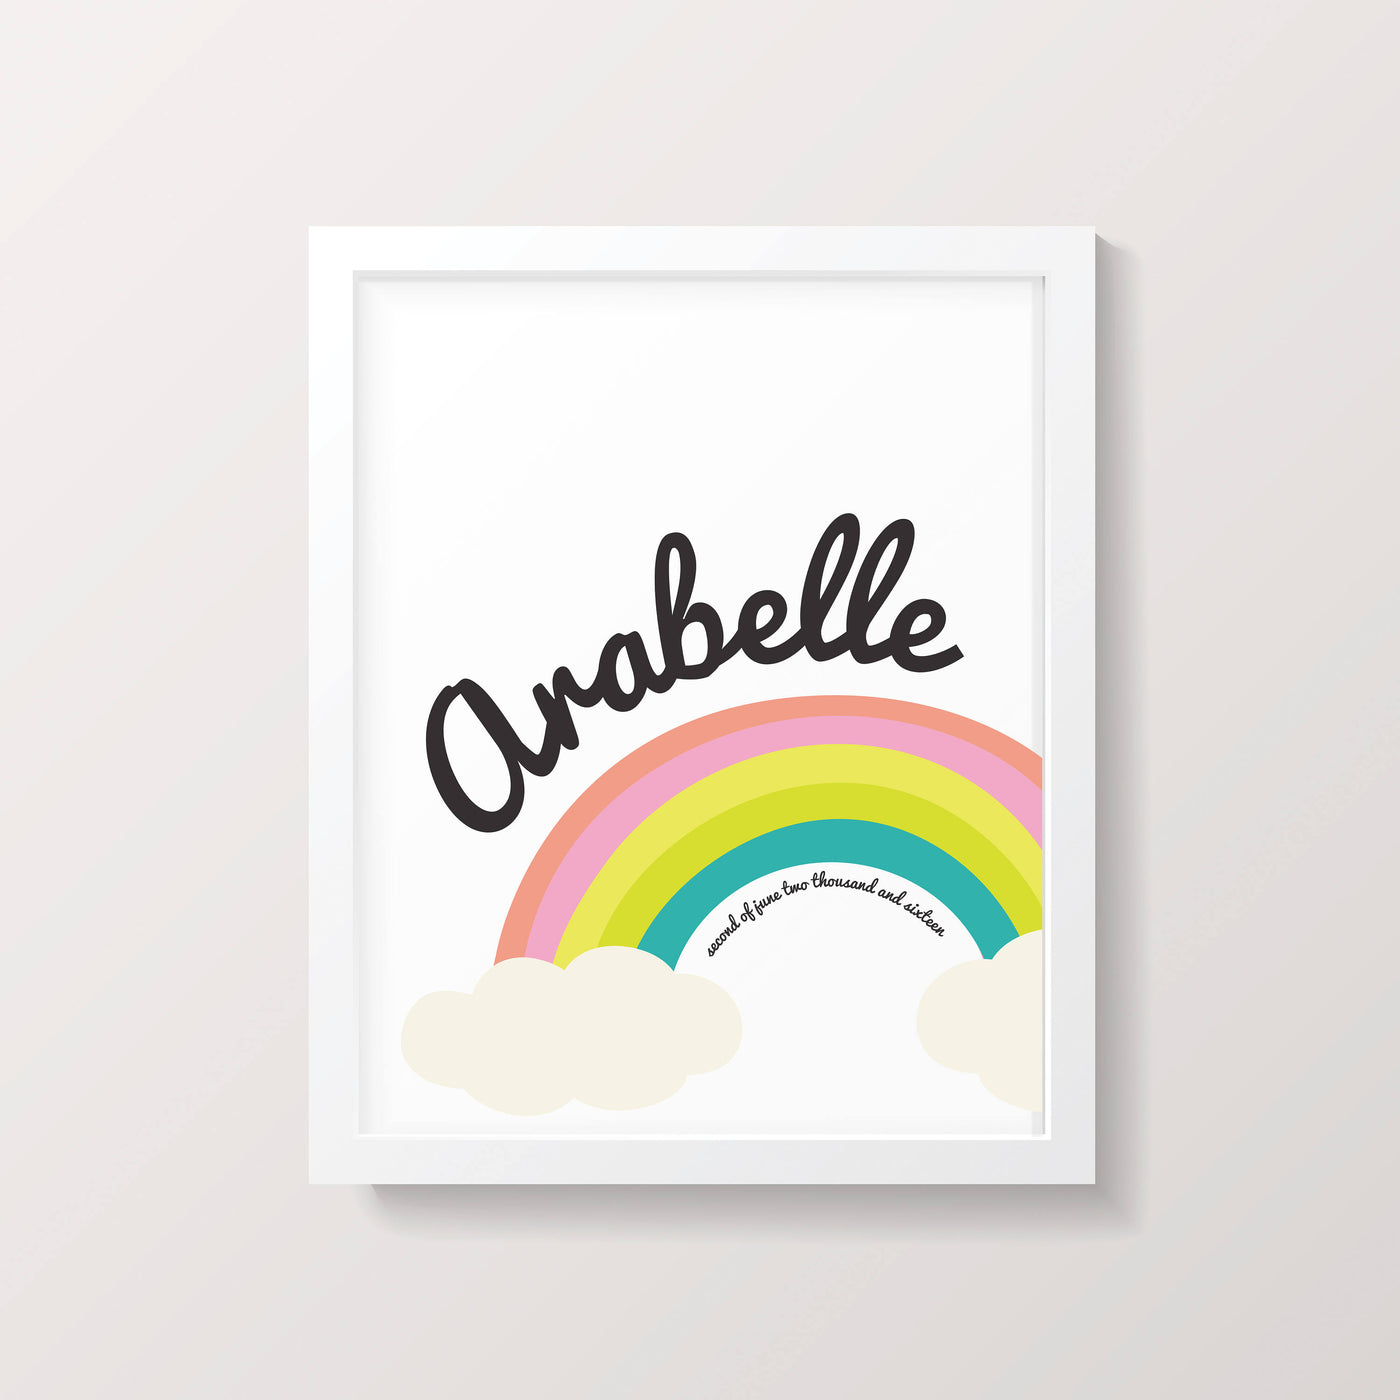 Personalised New Baby Rainbow And Cloud Print - Personalised New Baby Rainbow And Cloud Card - New Baby Card and Print Set - Rainbow Decor